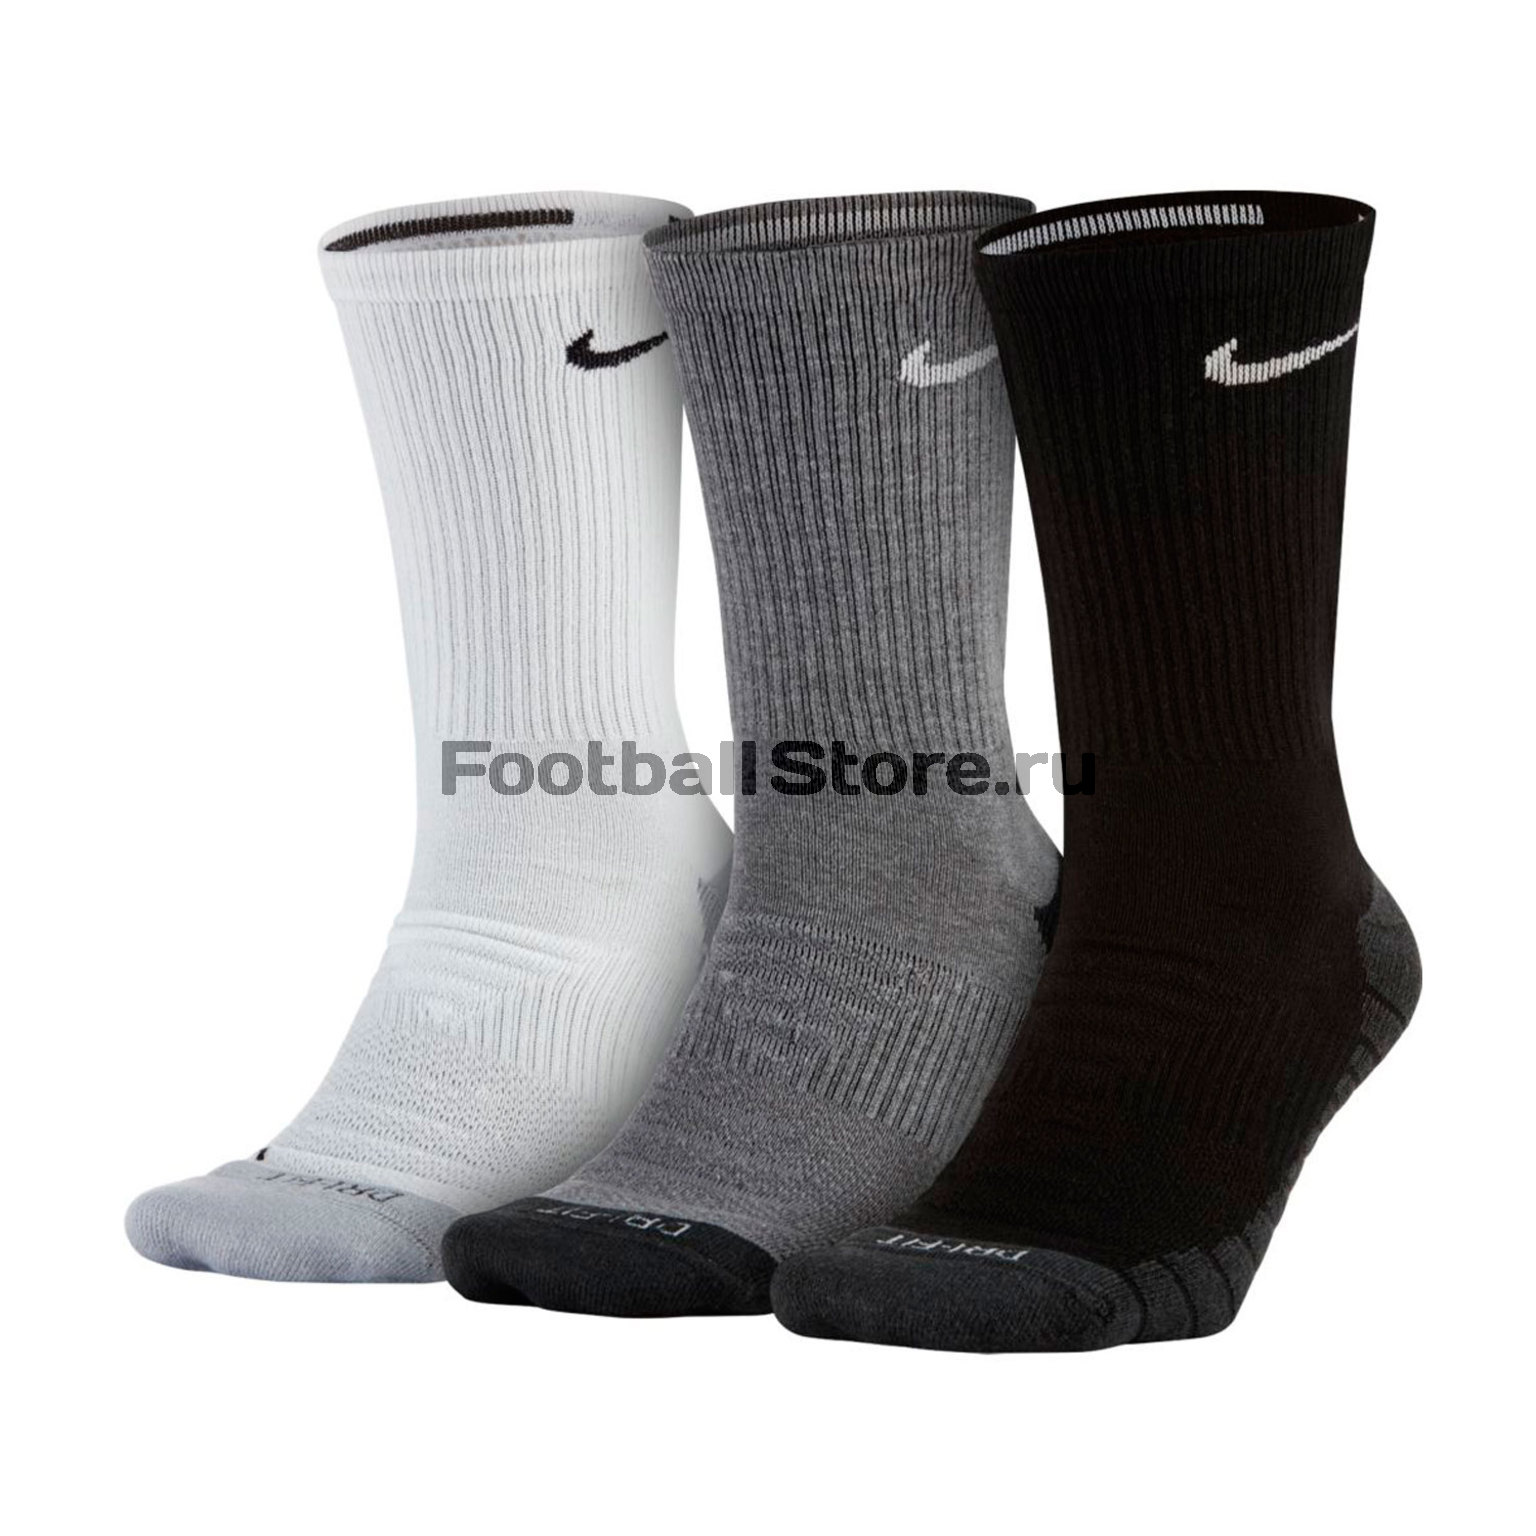 Комплект носков Nike 3PPK Dri-Fit Cushion Crew SX5547-900 комплект носков nike 3ppk cushion crew sx4700 901